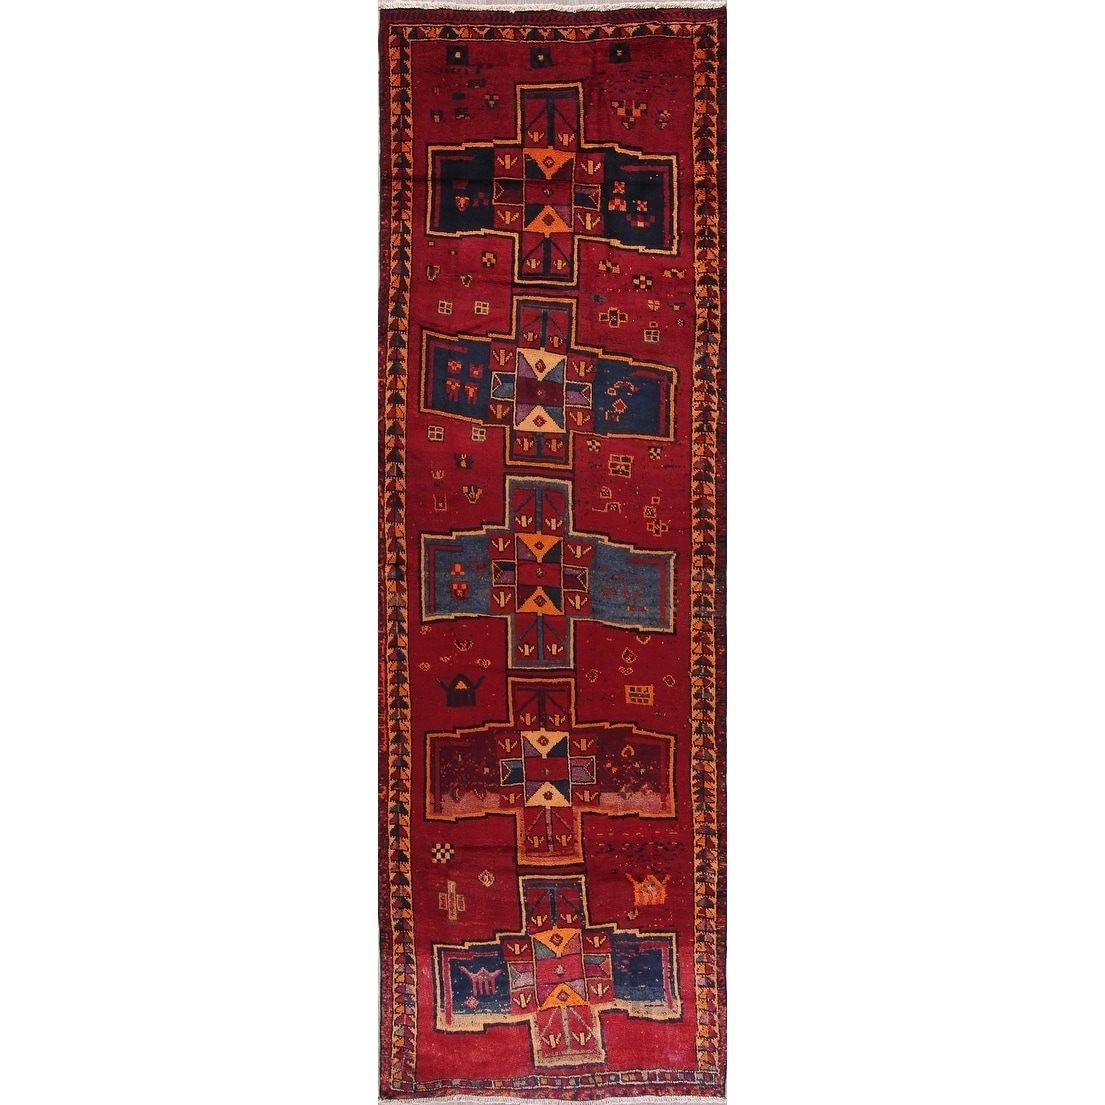 Antique Lori Geometric Hand Knotted Wool Persian Oriental Rug 13 0 X 4 2 Runner